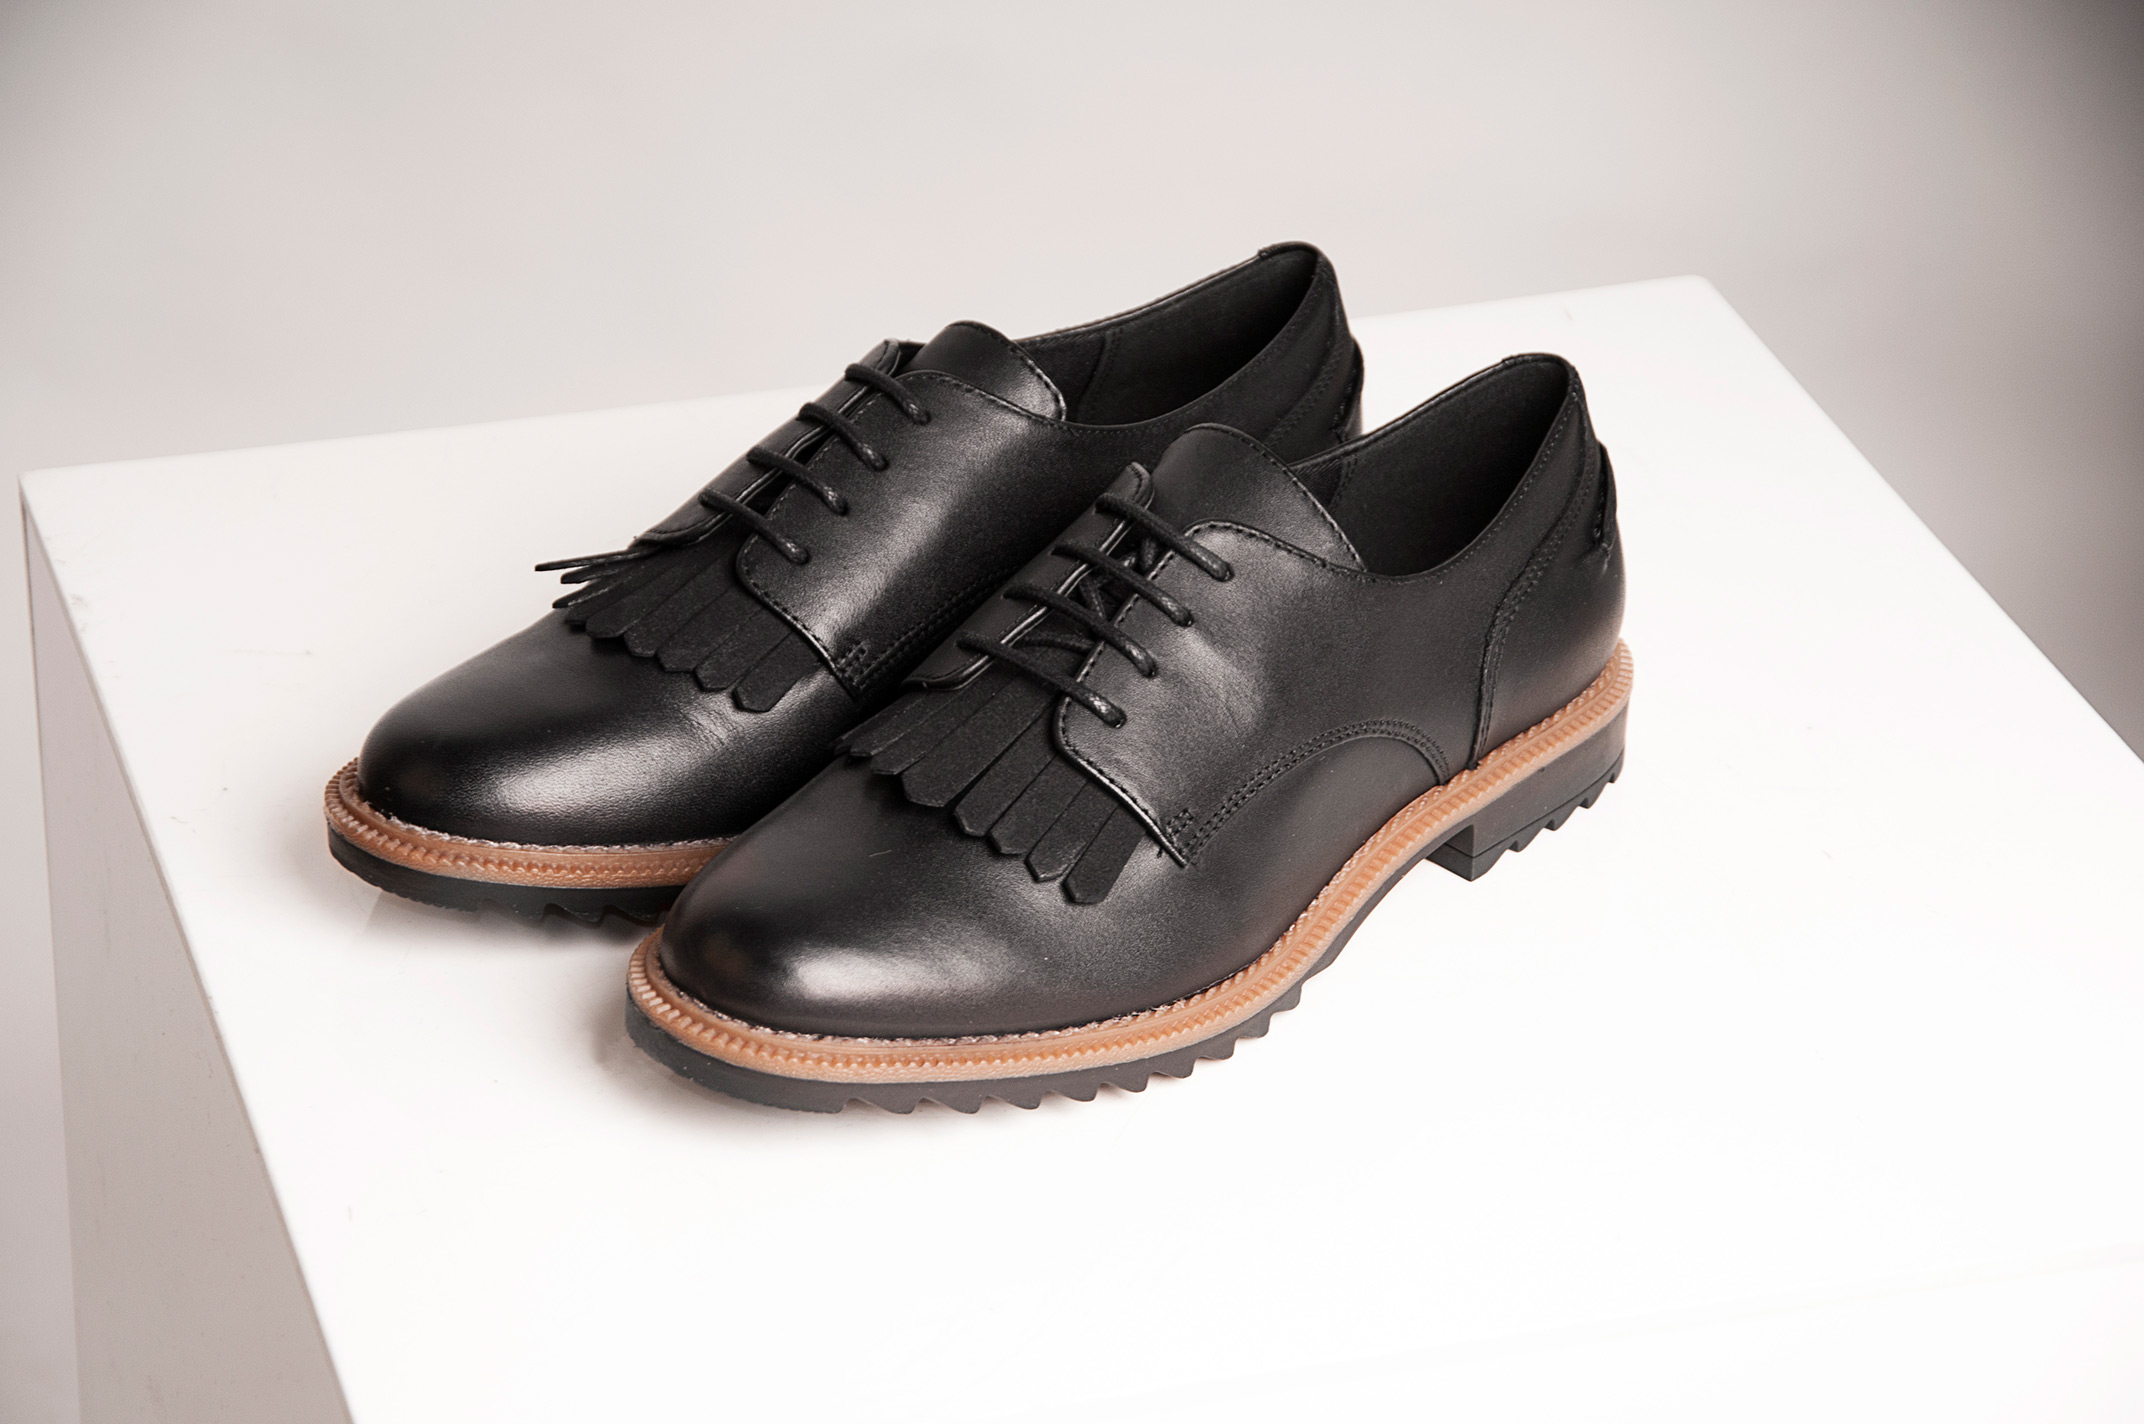 Fringed Lace Up School Shoes